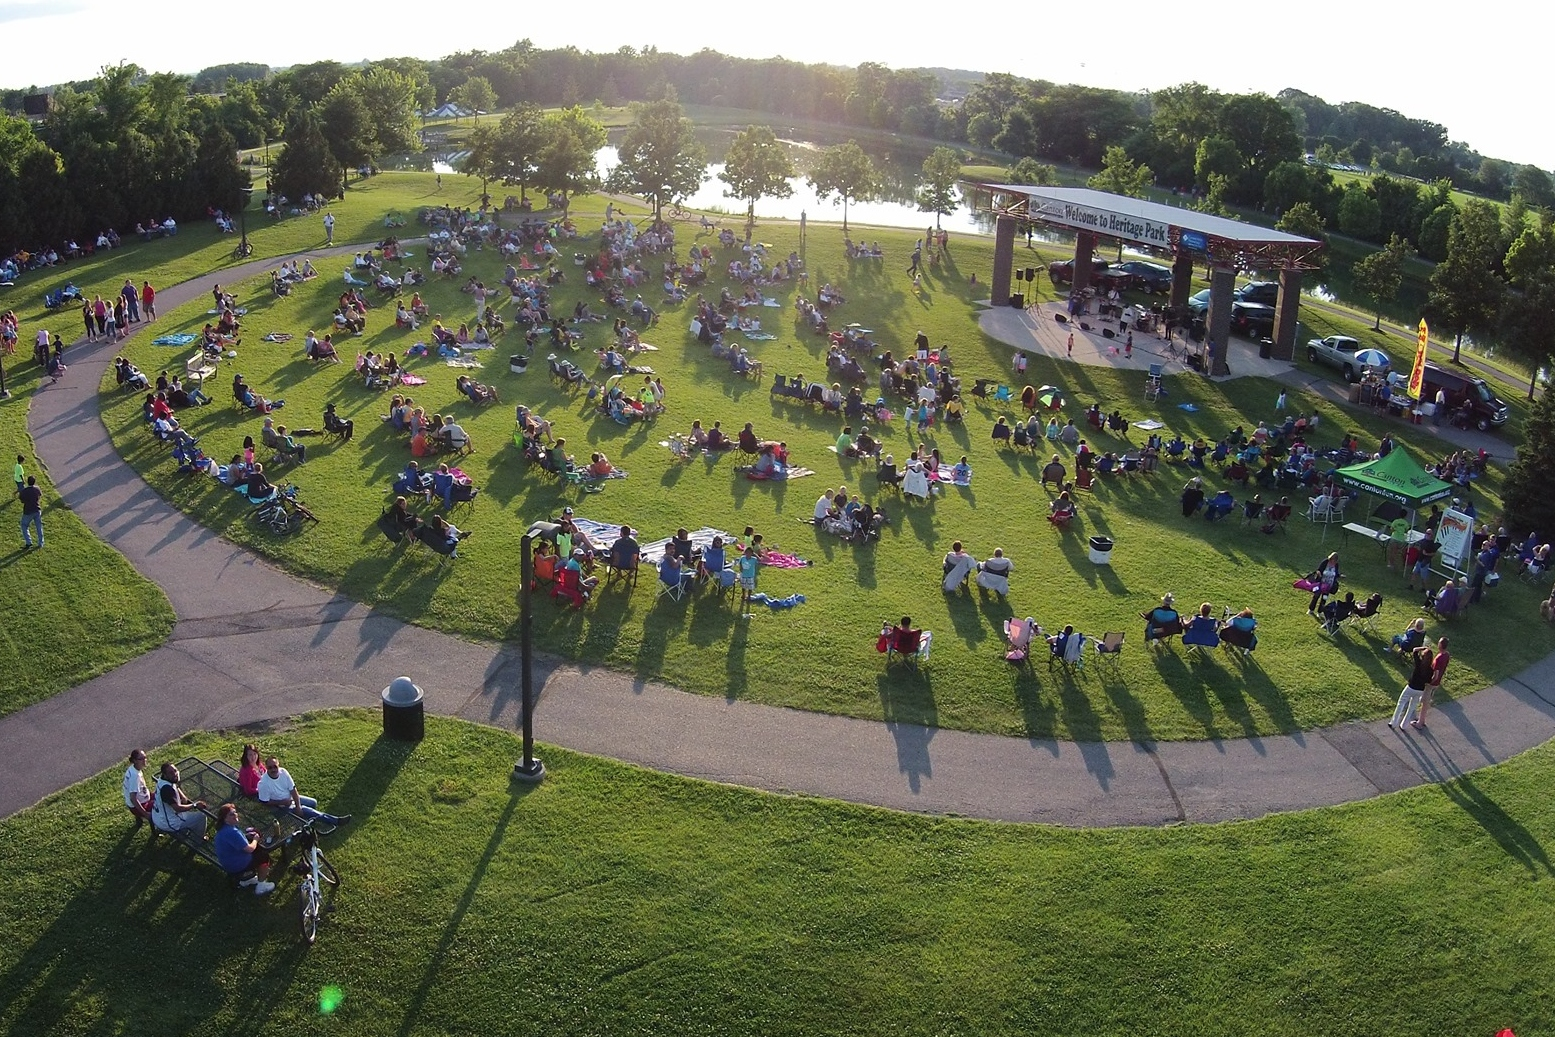 TUESDAYS ARE TERRIFIC Concert Series